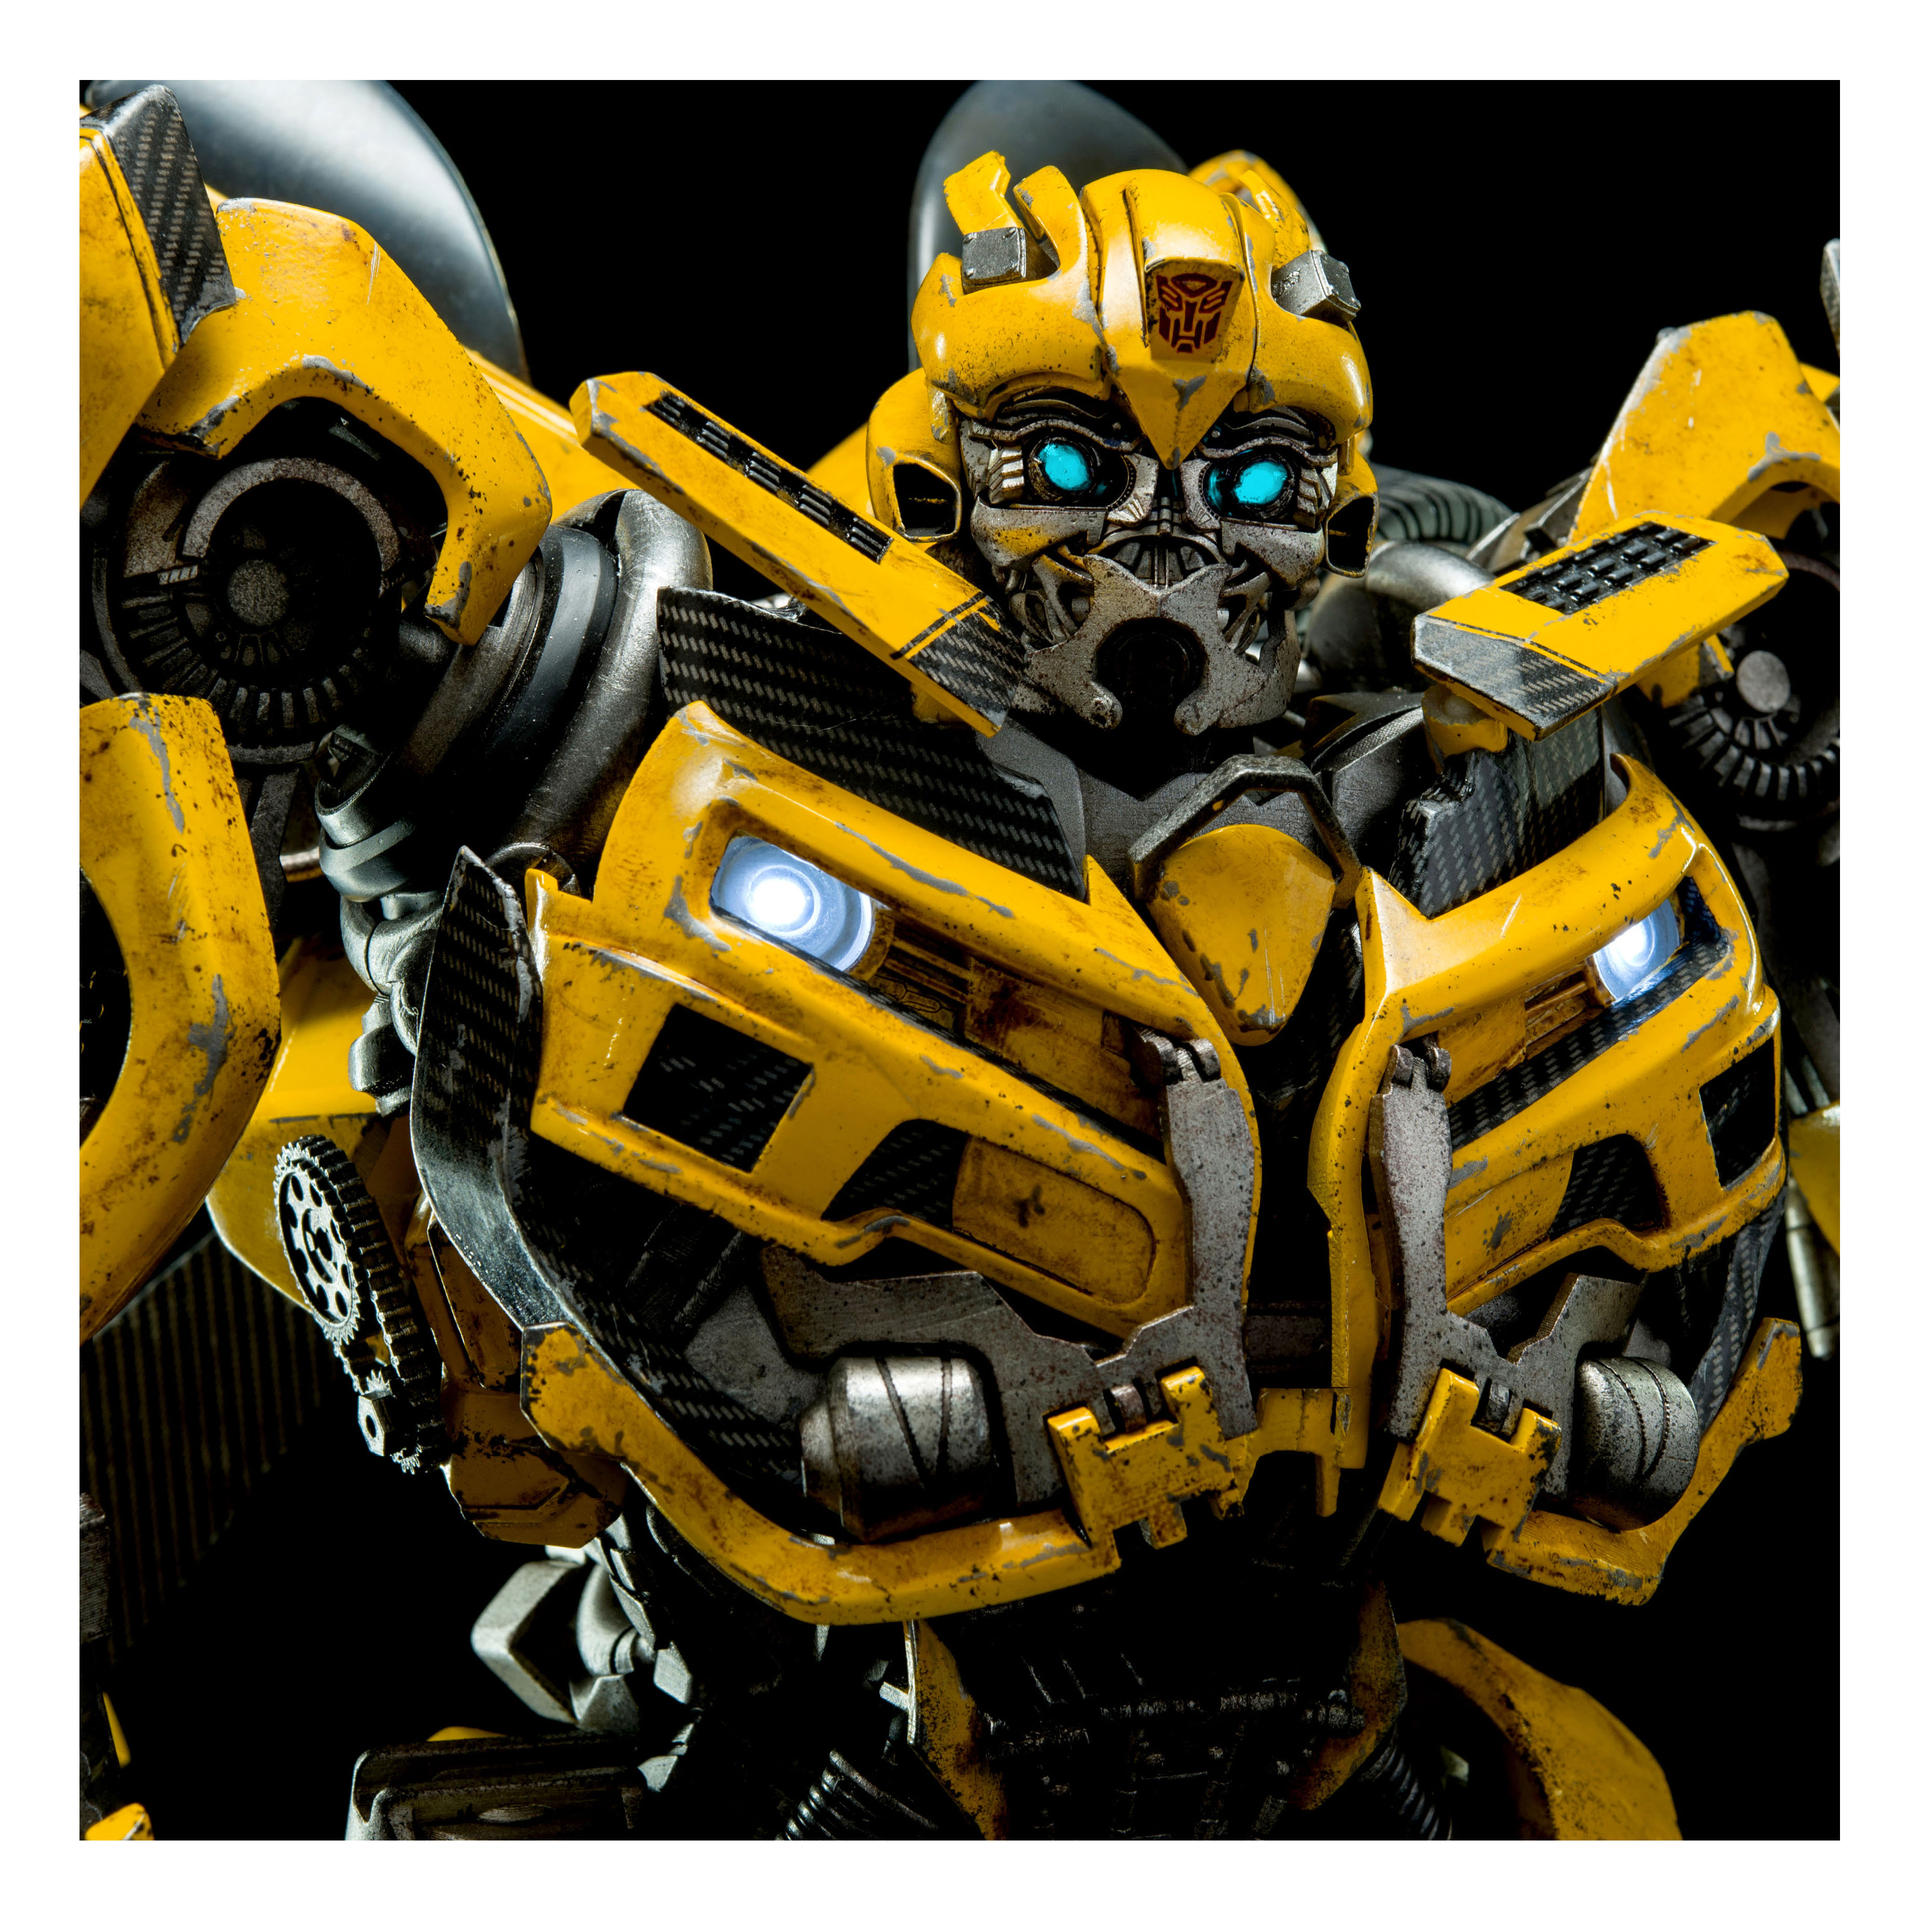 3A-Transformers-Bumblebee-010